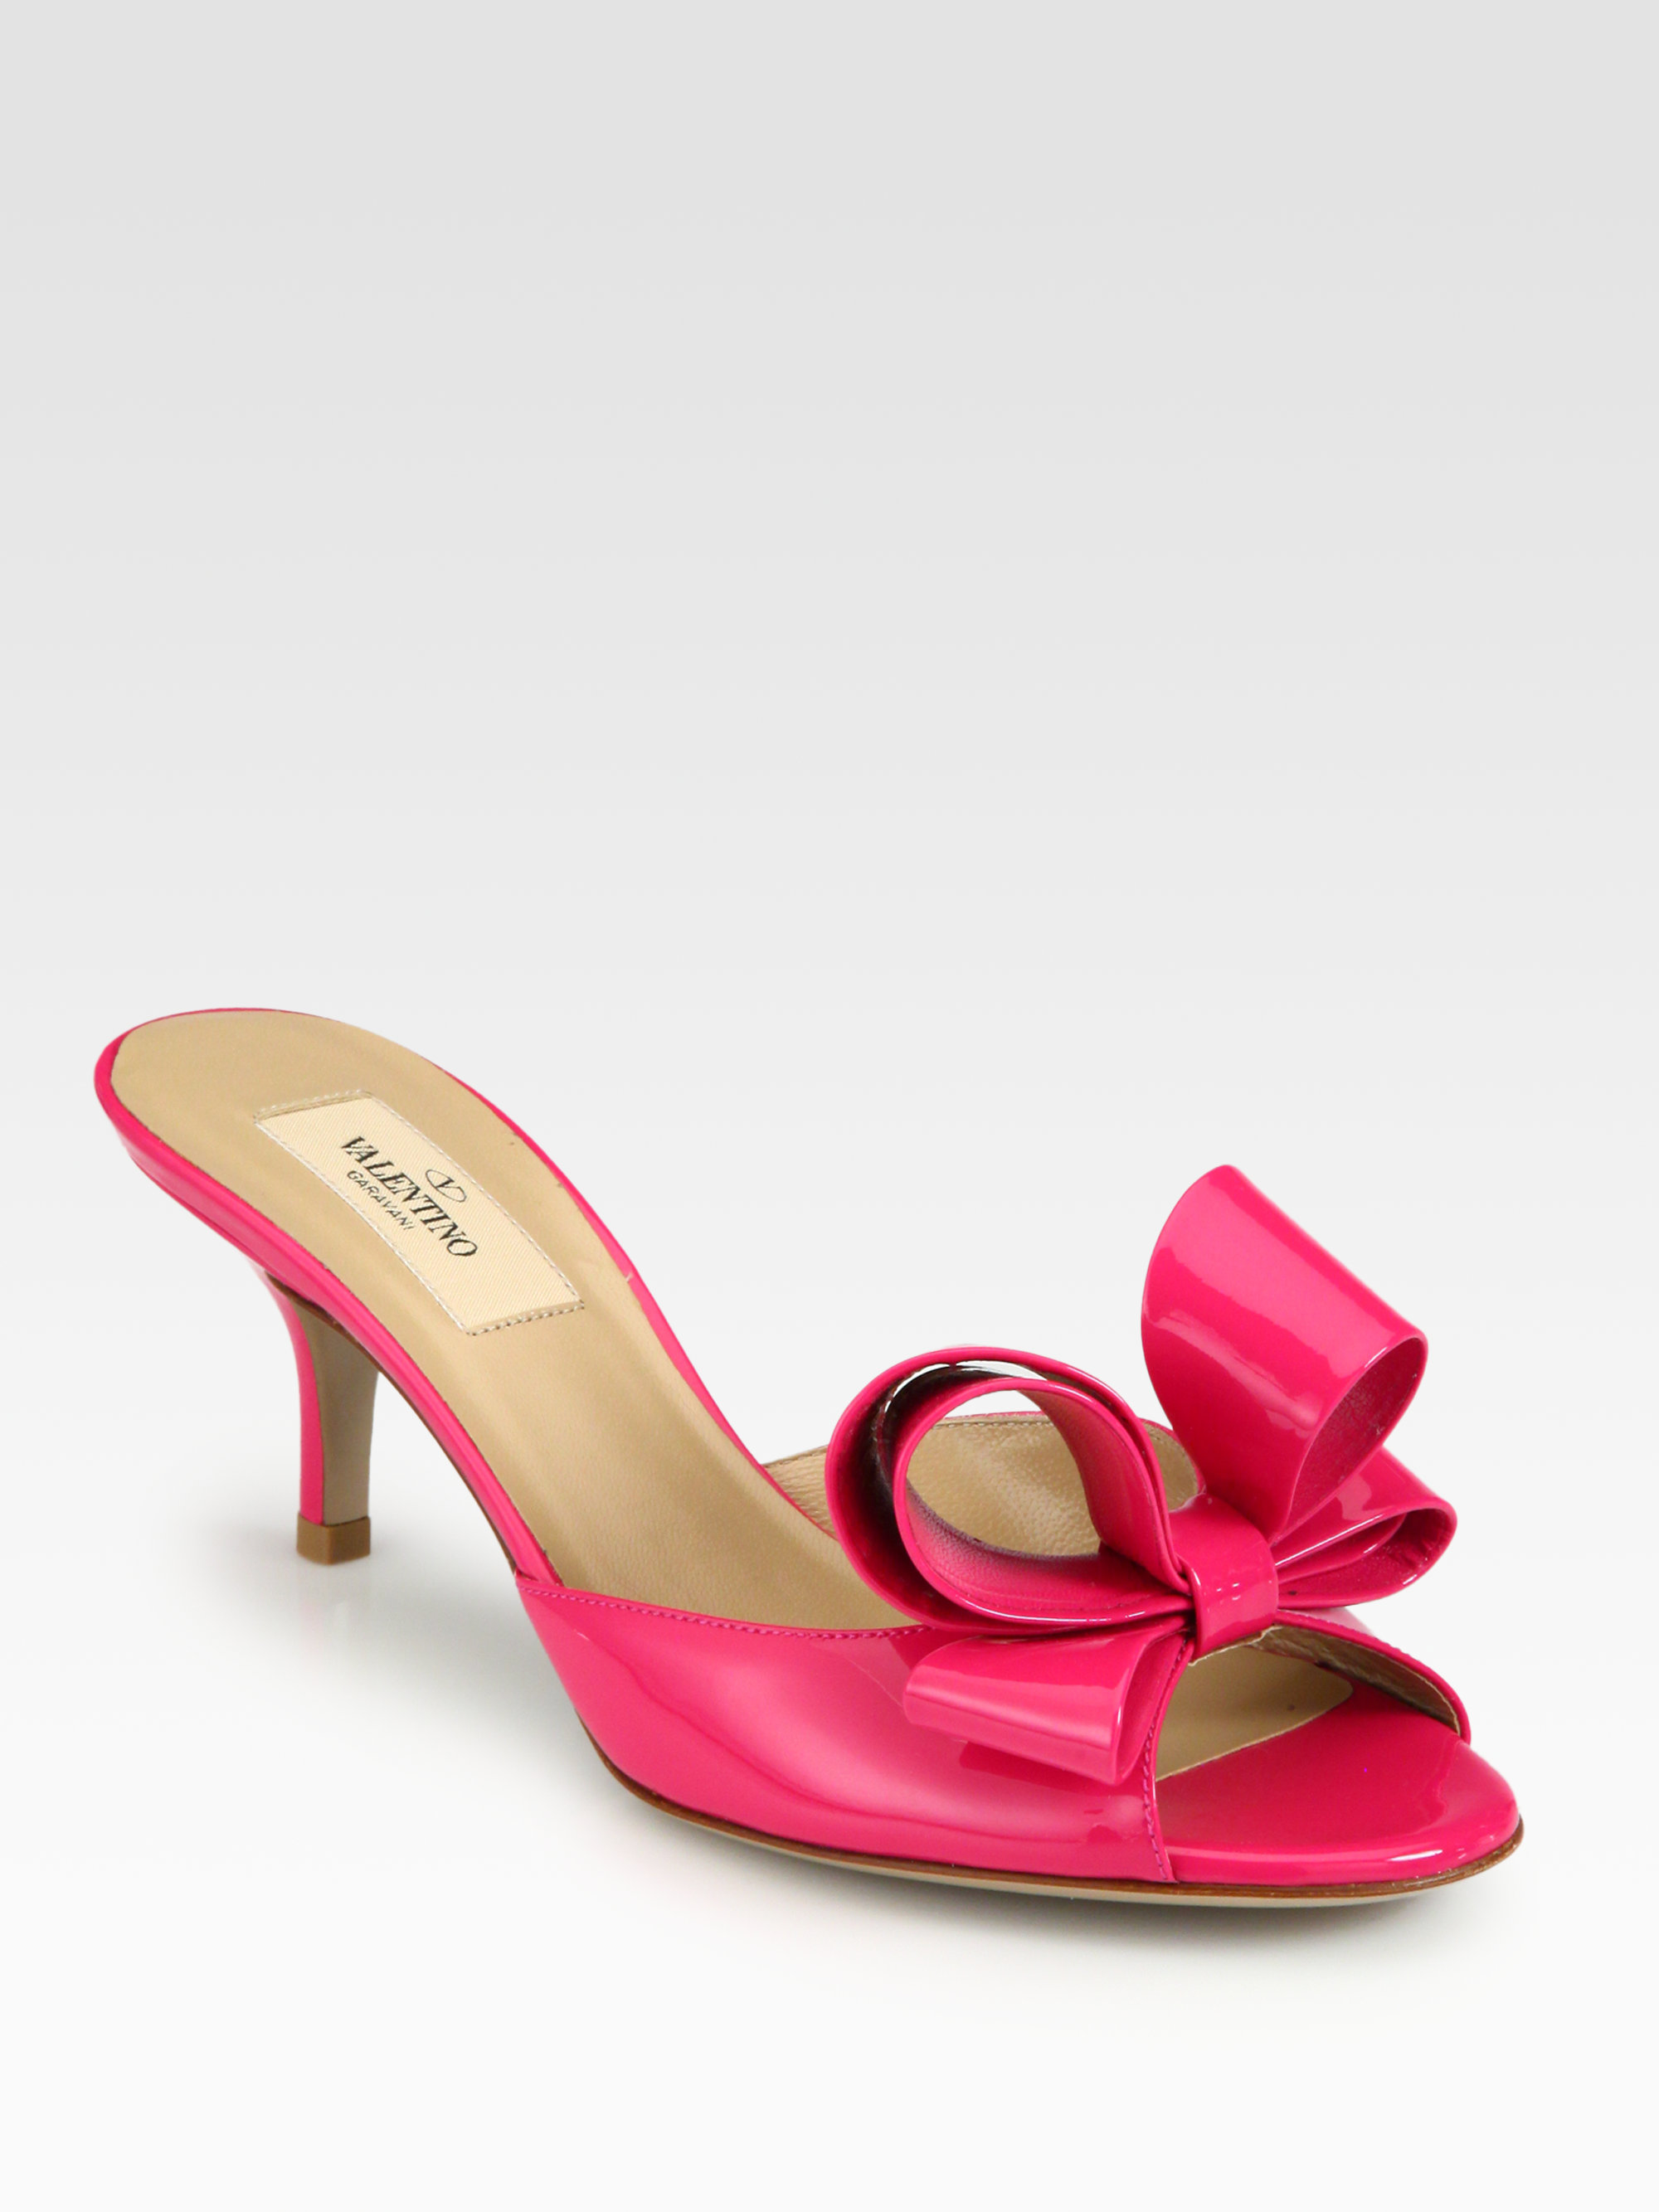 Valentino Patent Leather Slide Sandals discount get authentic very cheap for sale cheap wholesale 3hUS8dFLR